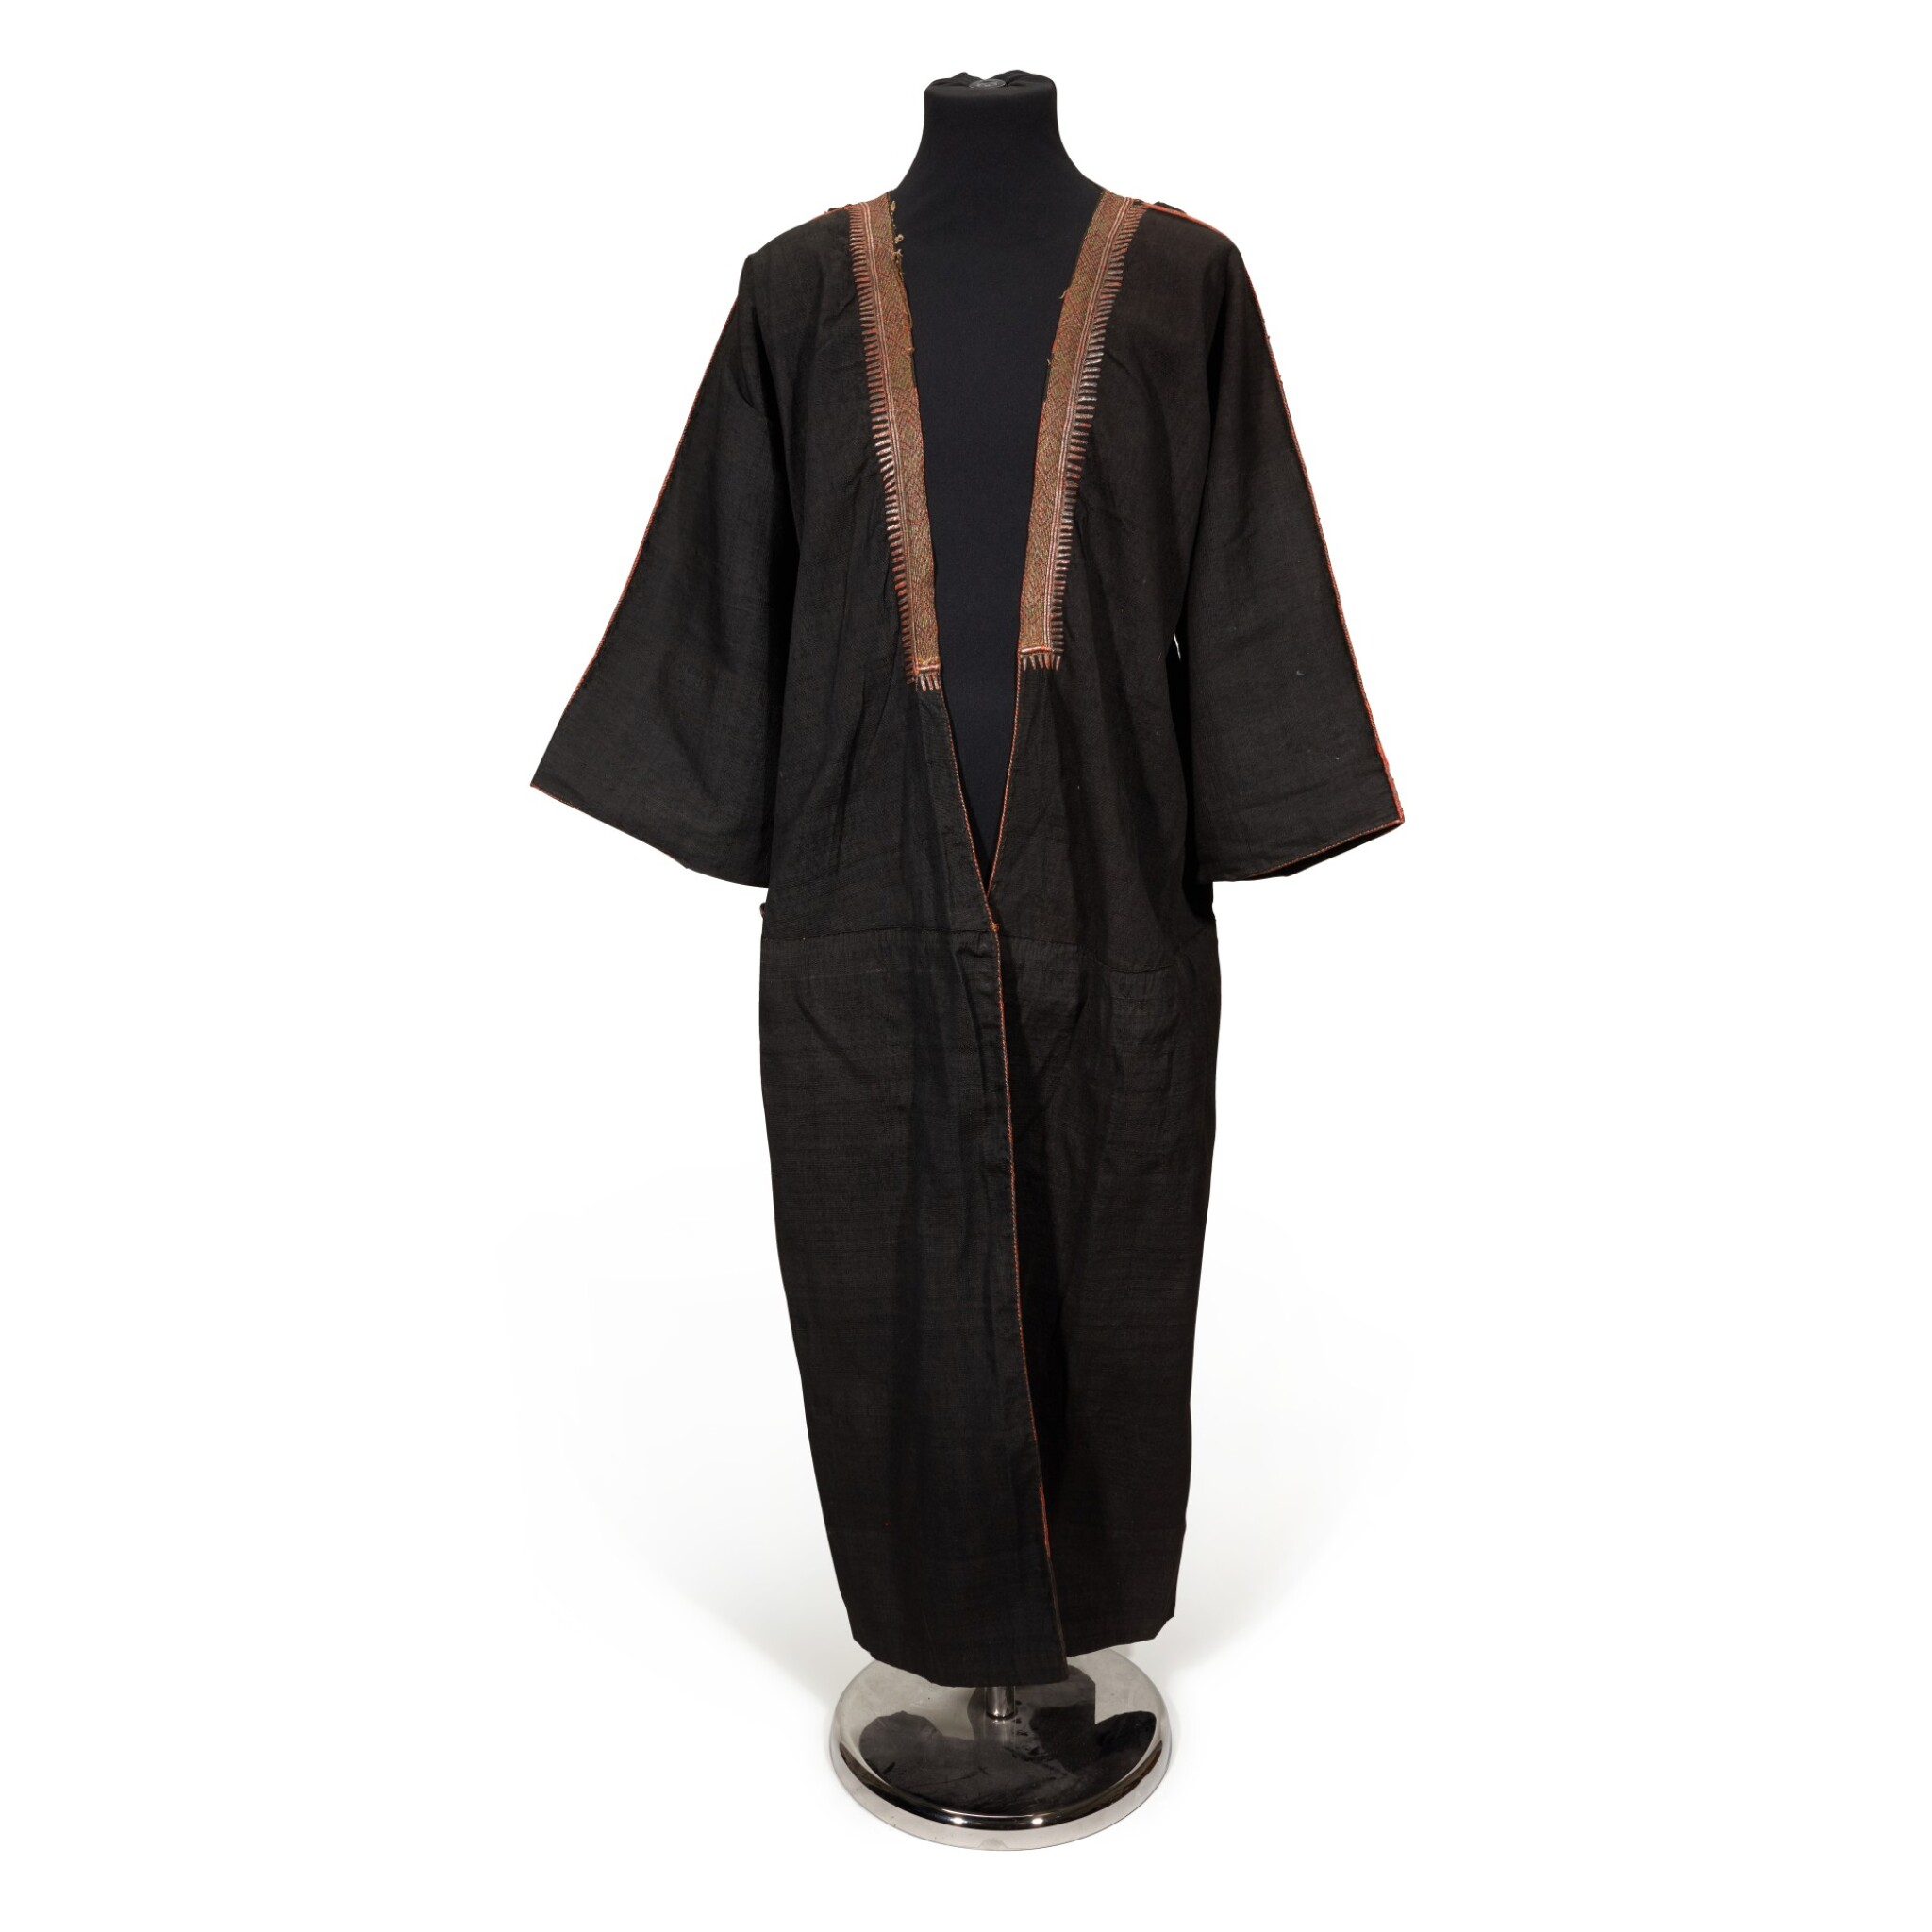 View full screen - View 1 of Lot 93. LAWRENCE | Black wool and cotton Zebun, or outer robe, believed to have been owned by Lawrence.